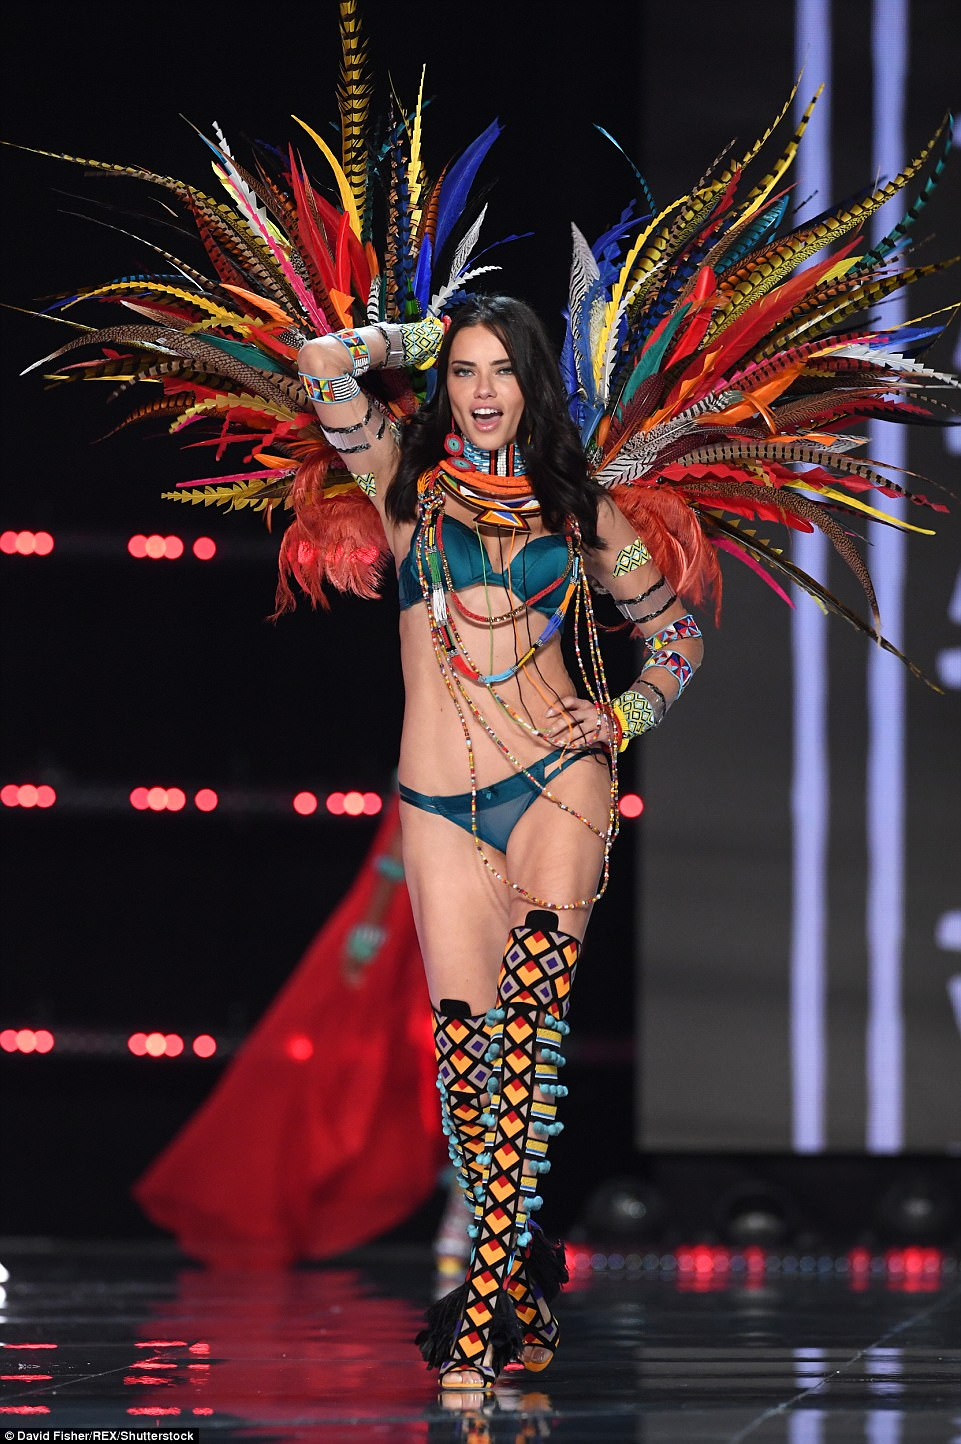 Glam: Also turning heads on the runway was Adriana Lima - a veteran Angel having walked the runway since 1999 and being not only their longest-running model, but named 'the most valuable Victoria's Secret Angel' earlier this year